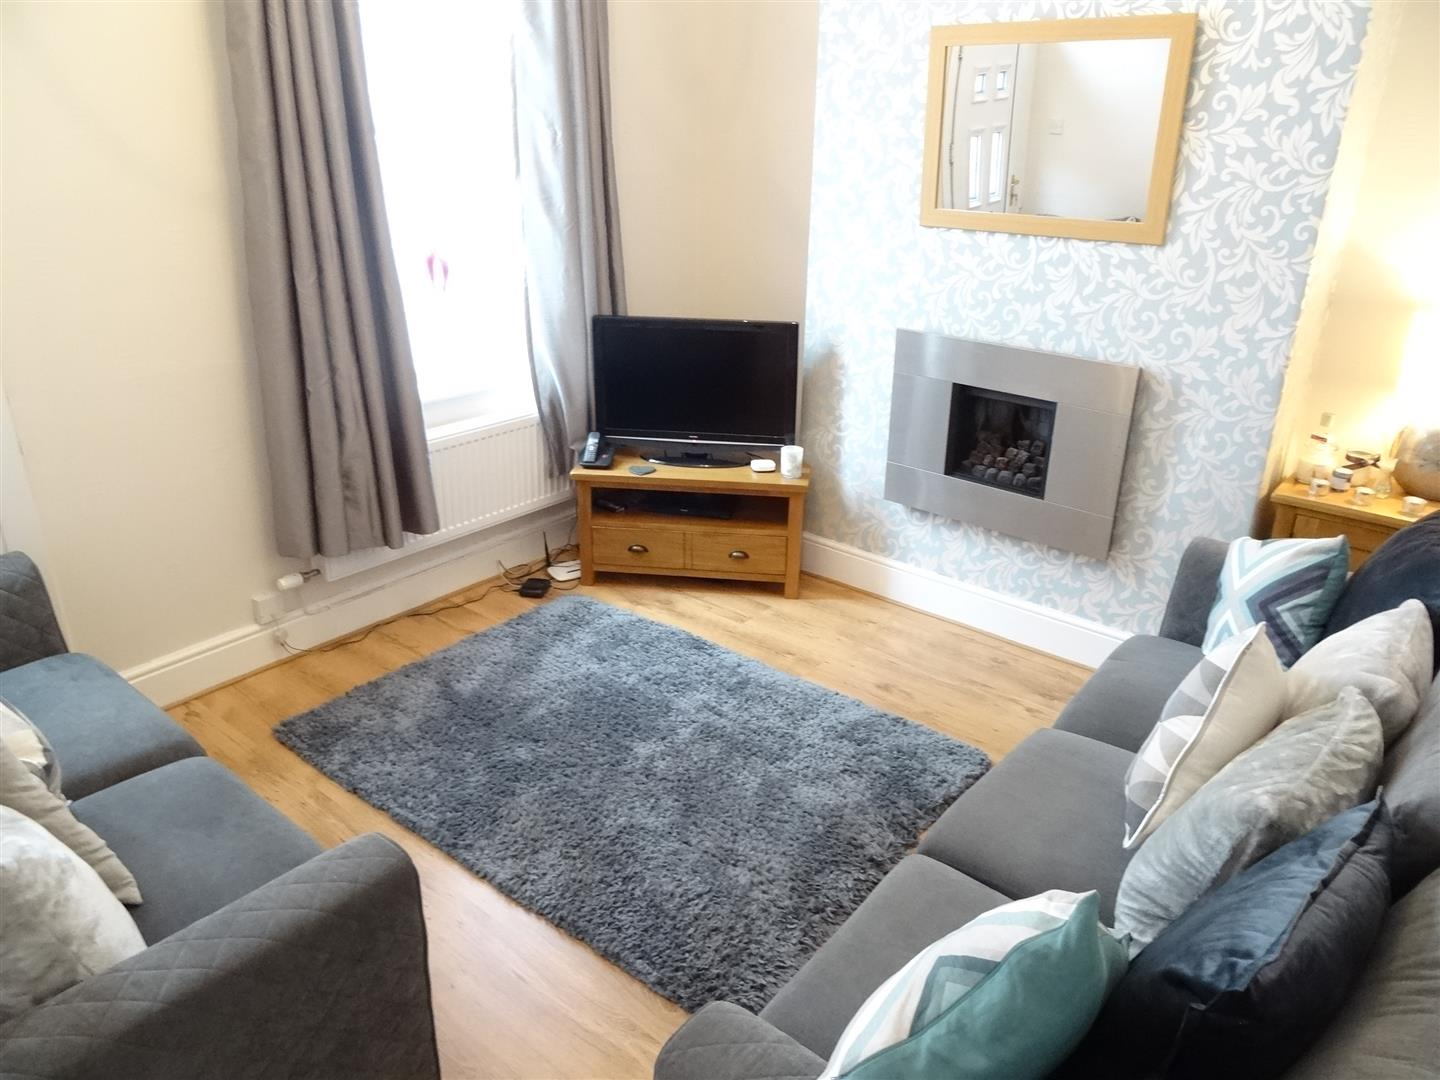 2 Bedrooms House - Terraced For Sale 31 Graham Street Carlisle